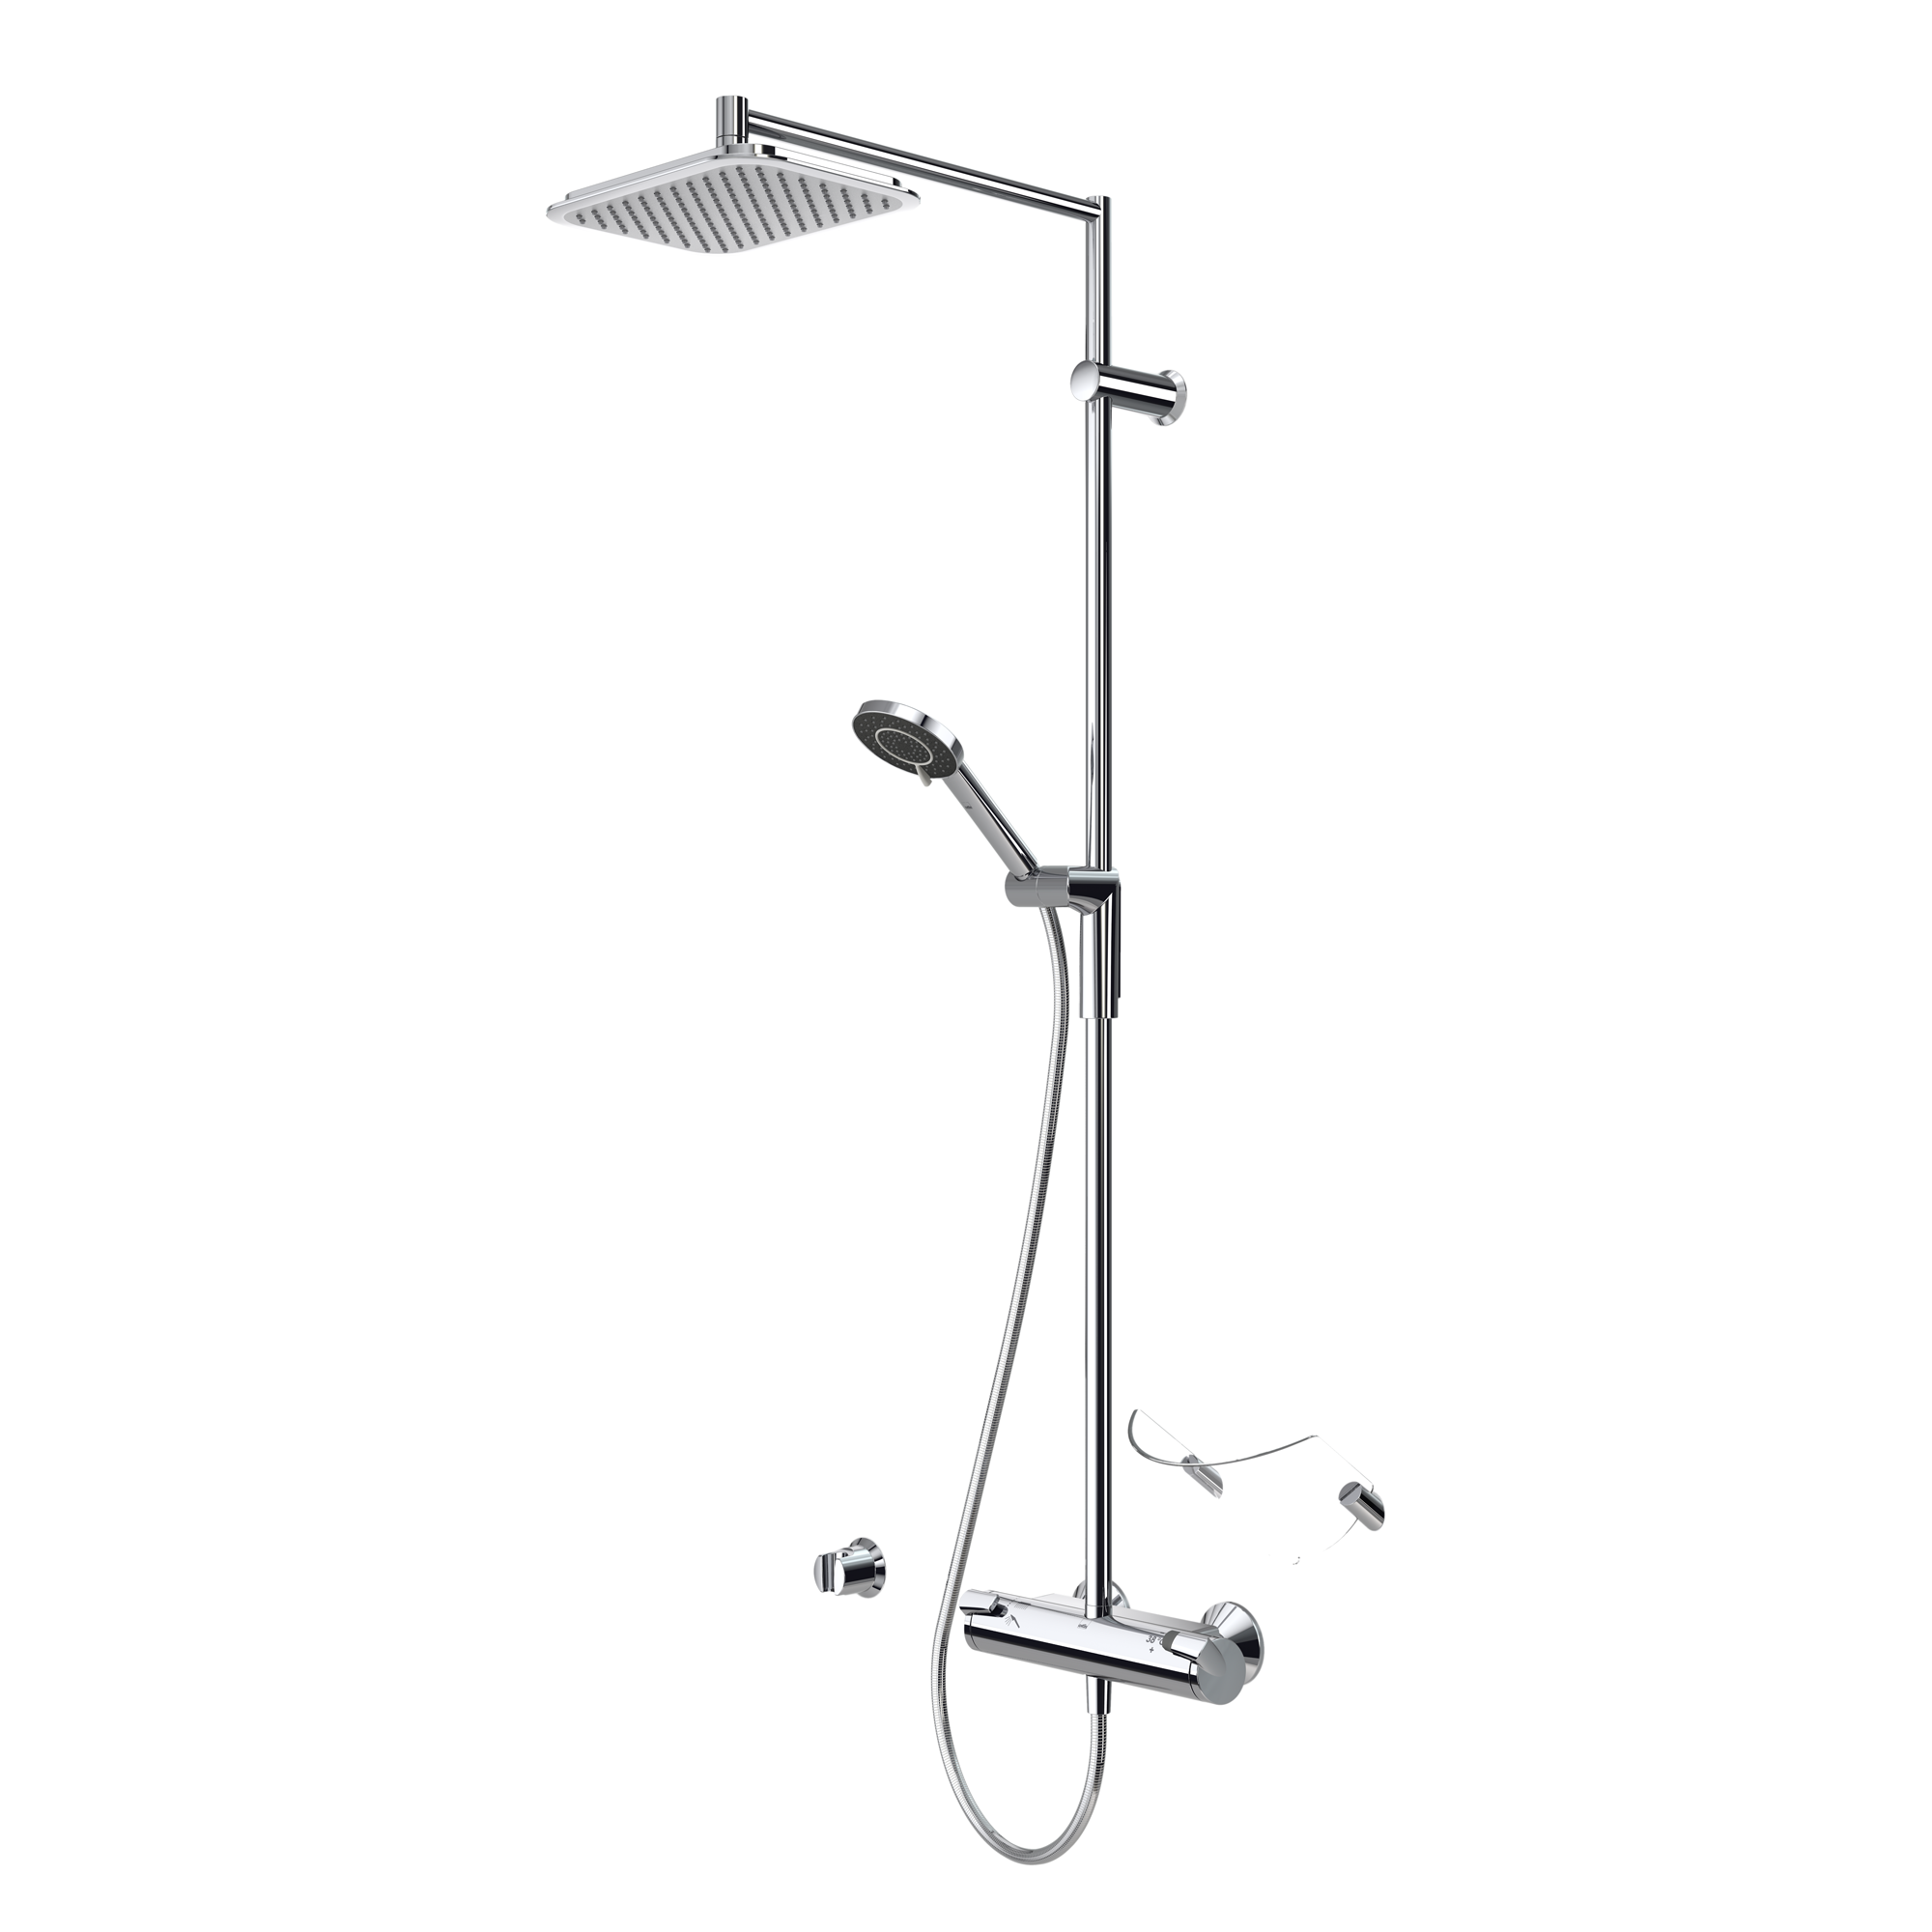 Душевая стойка Oras Optima 7192U best price wall mounted rain shower set square shower head 8 shower set with control valve shower set faucets